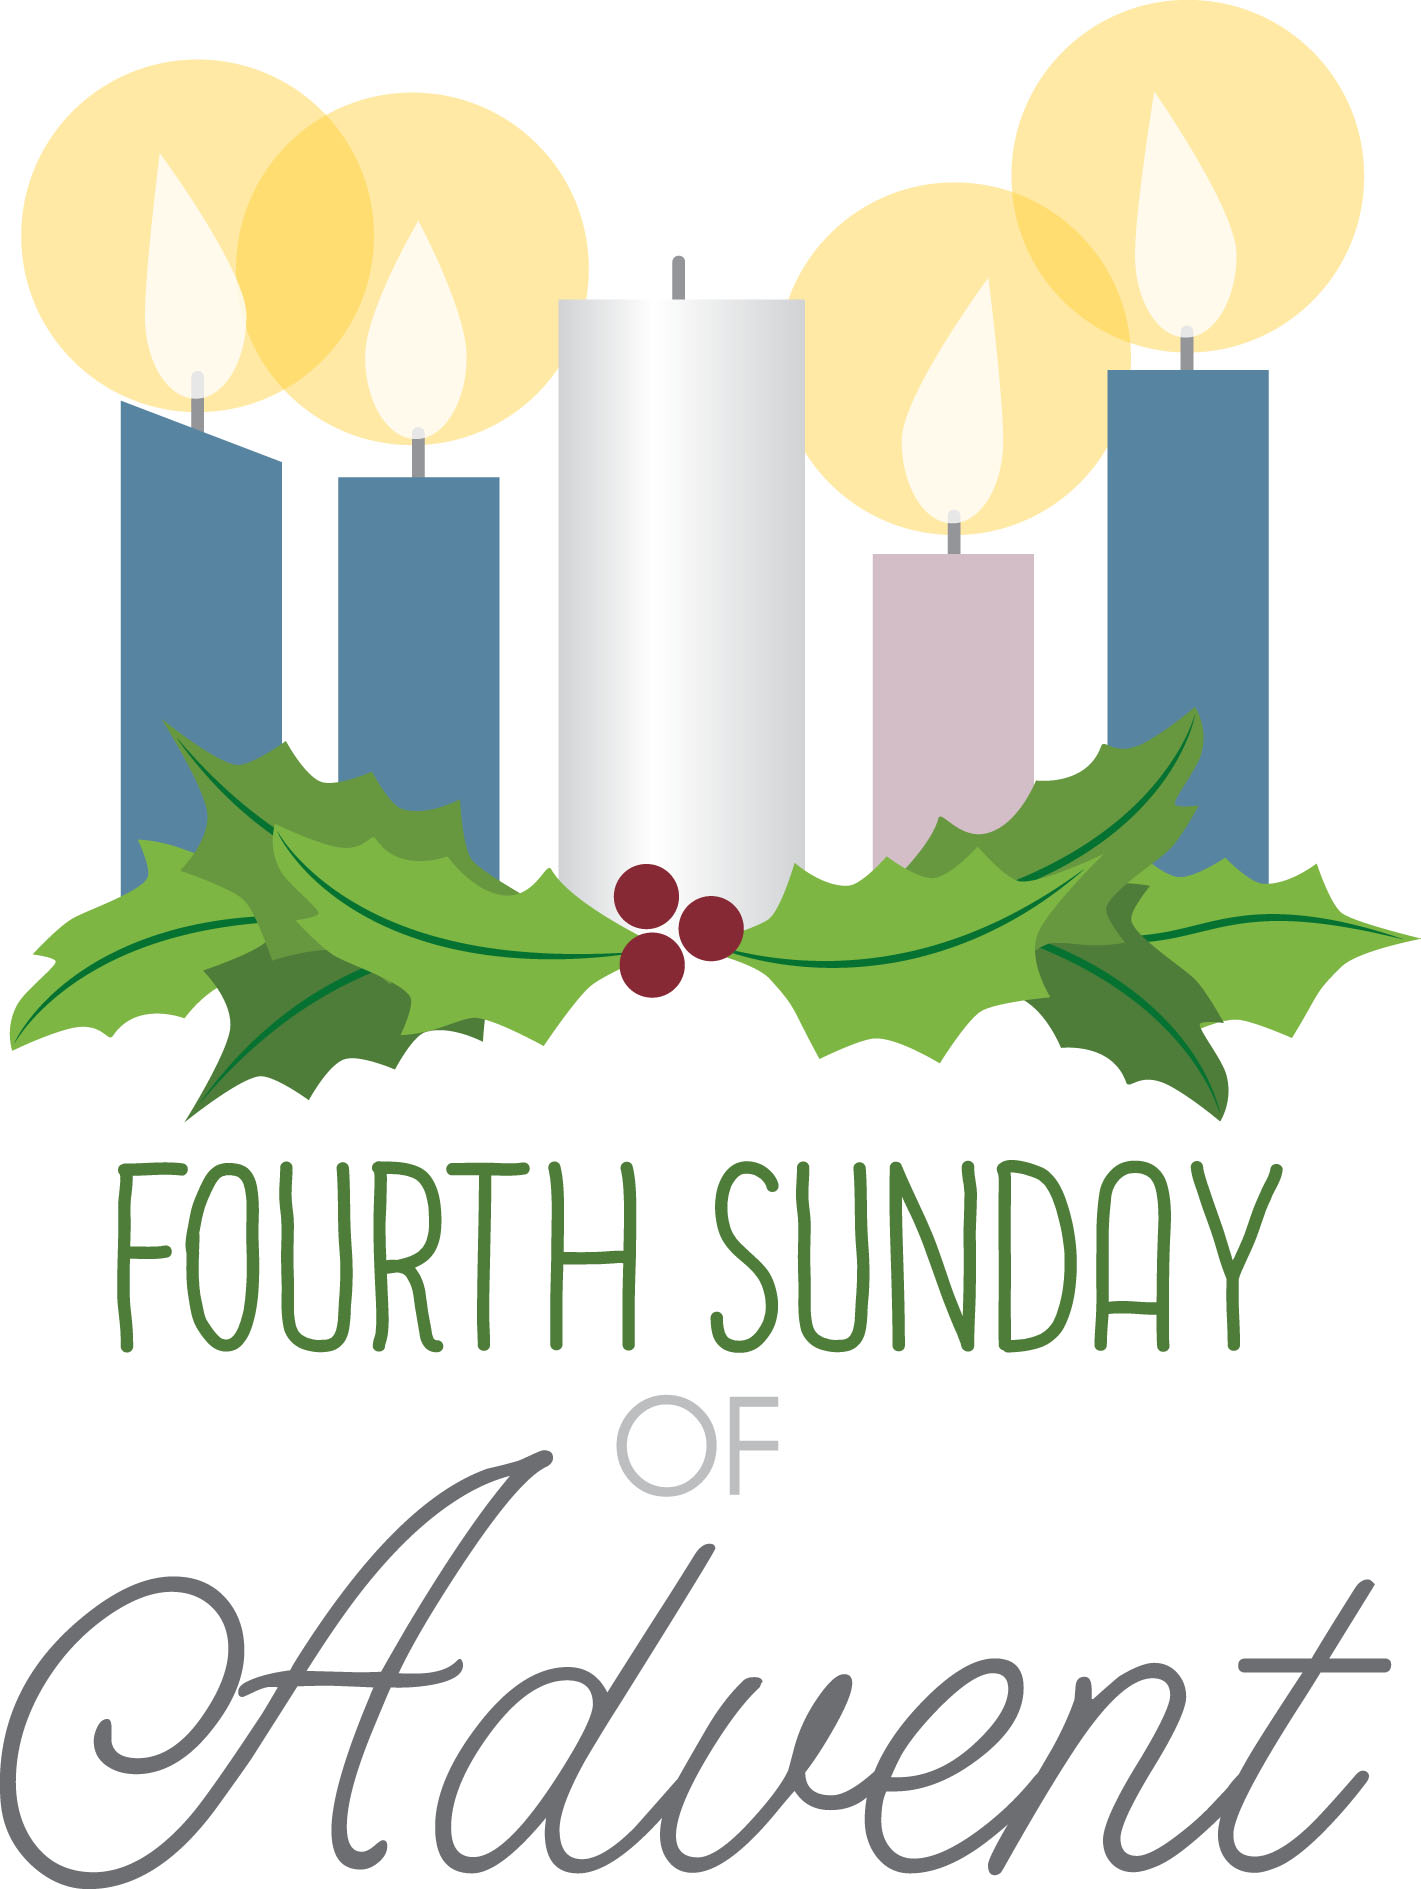 Fourth Sunday of Advent/Christmas Eve Message.